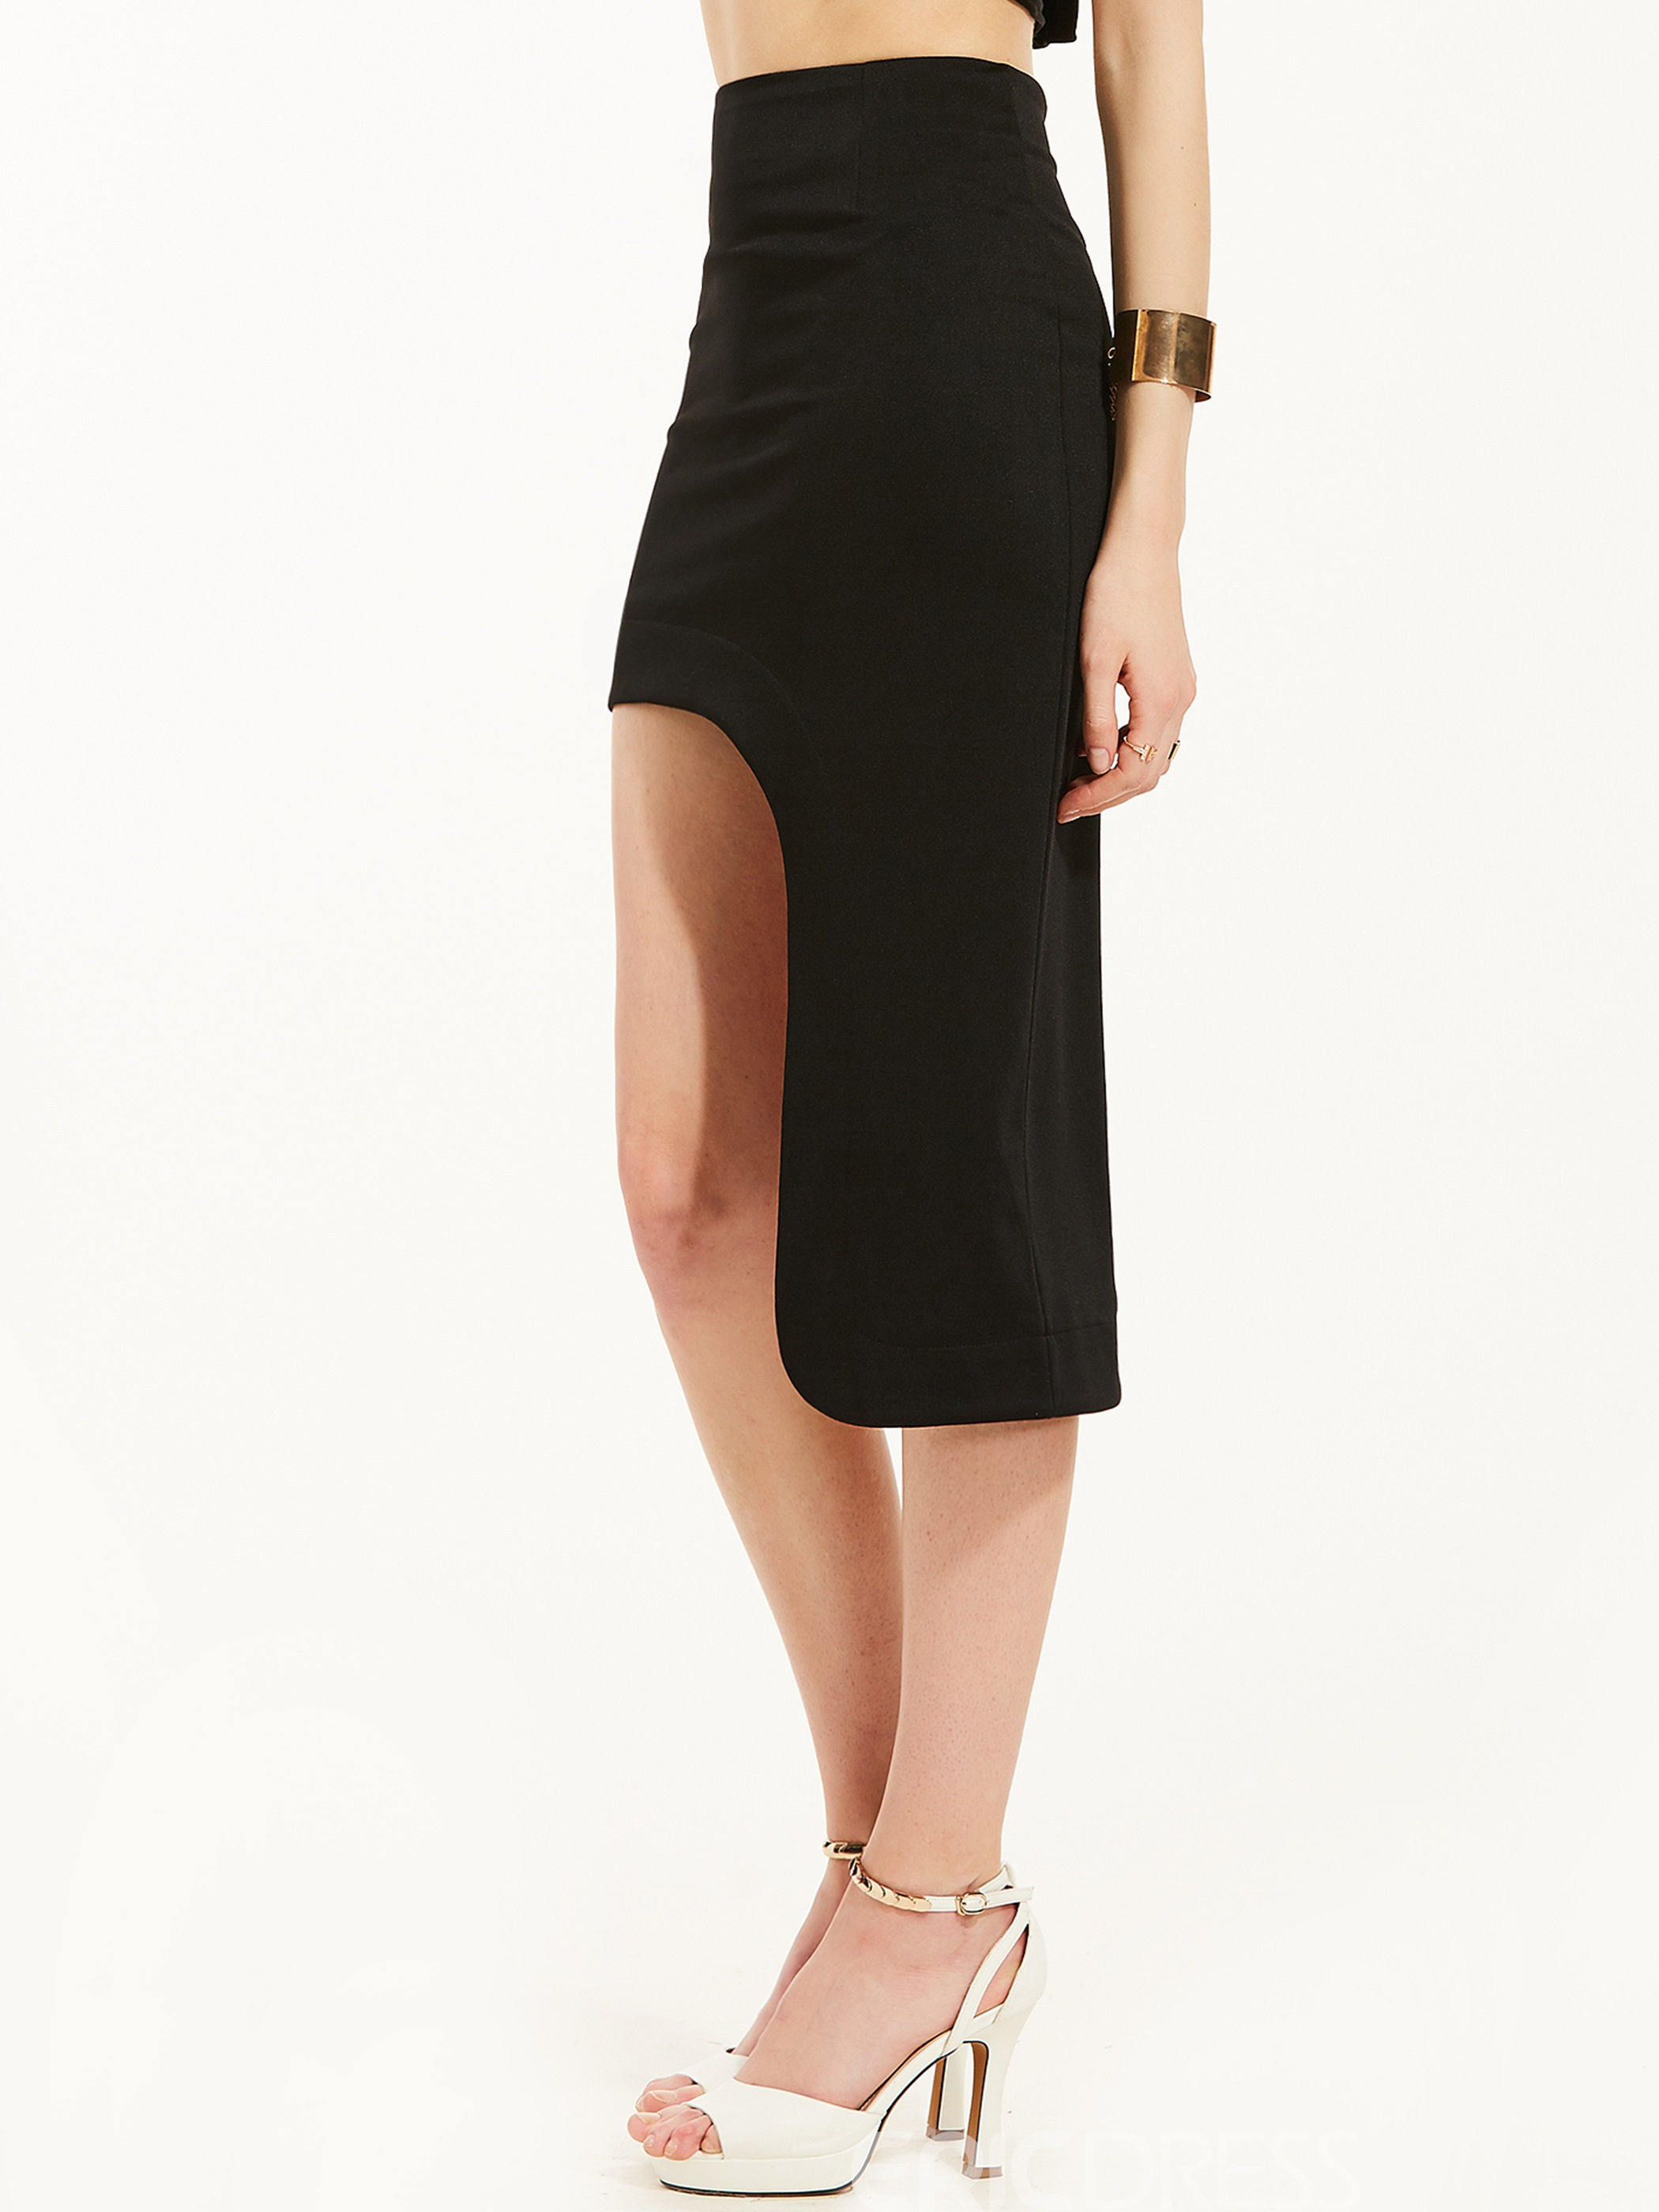 Mid-Waist Plain Mid-Calf Asymmetrical Skirt